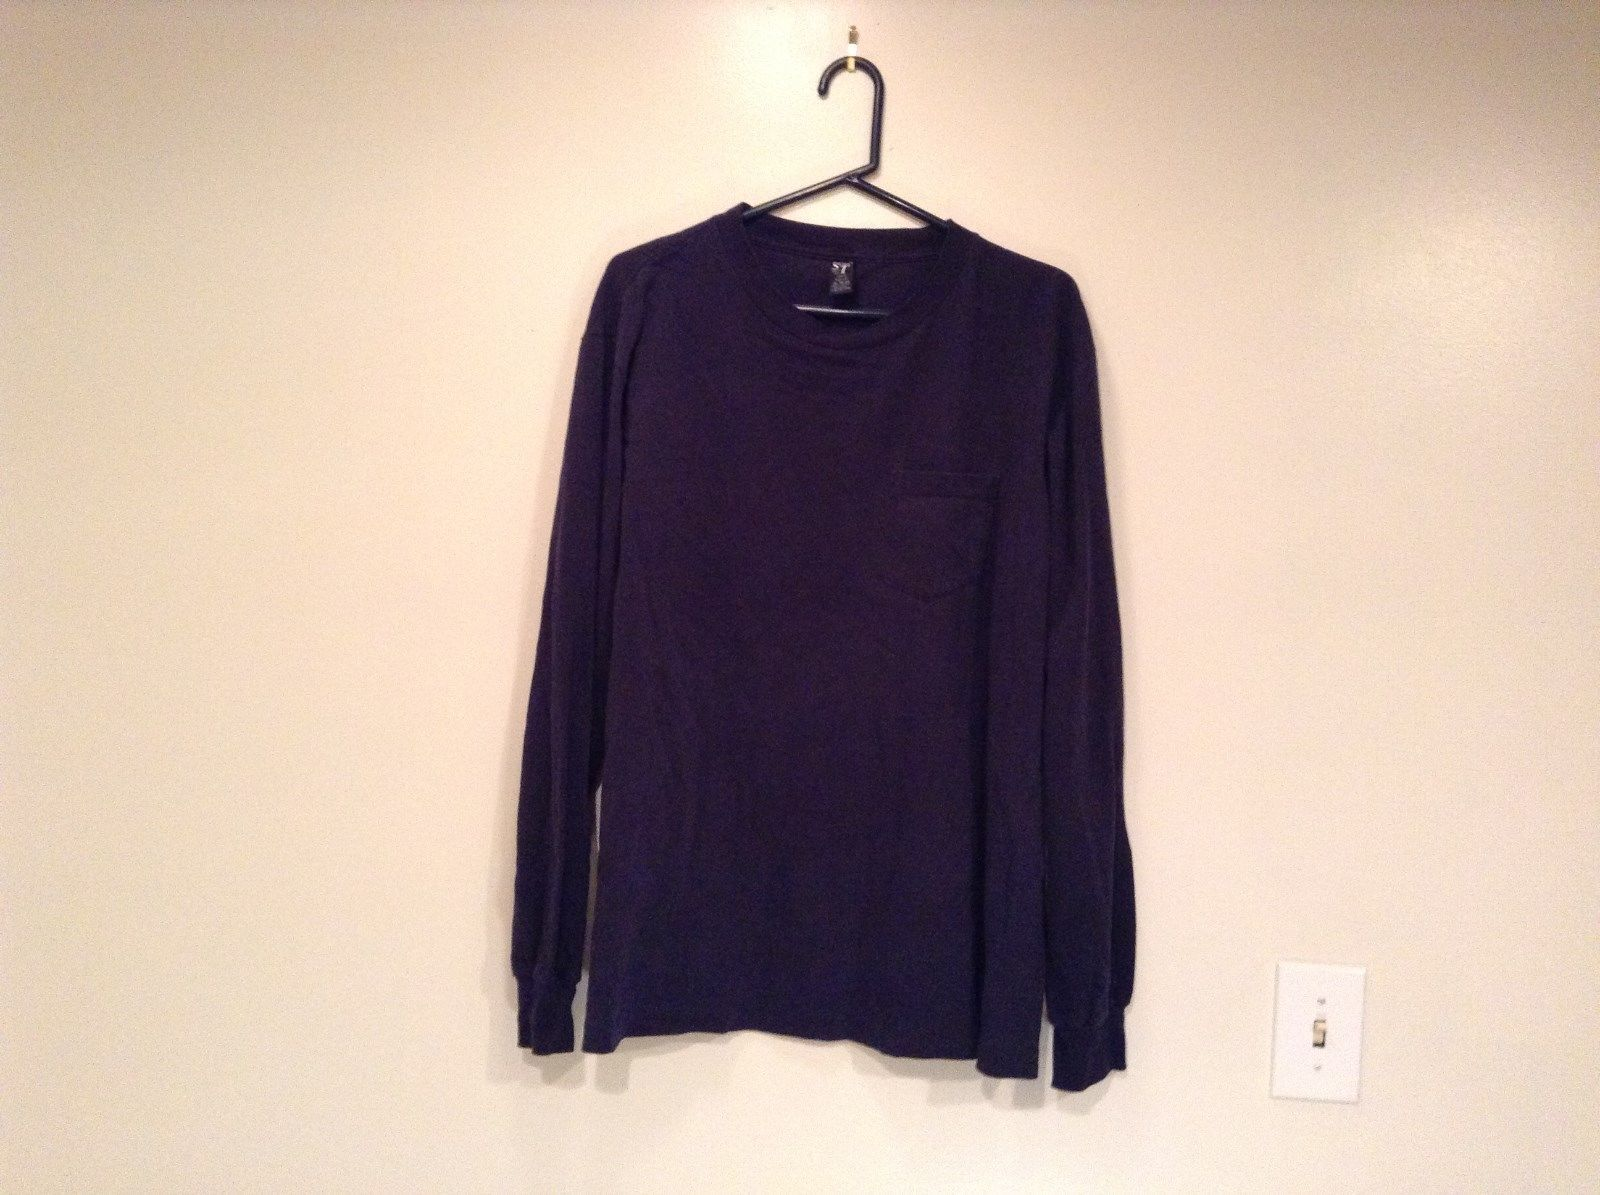 Lands End Super T Long Sleeve Dark Blue T Shirt Size XL 46 to 48 Made in USA